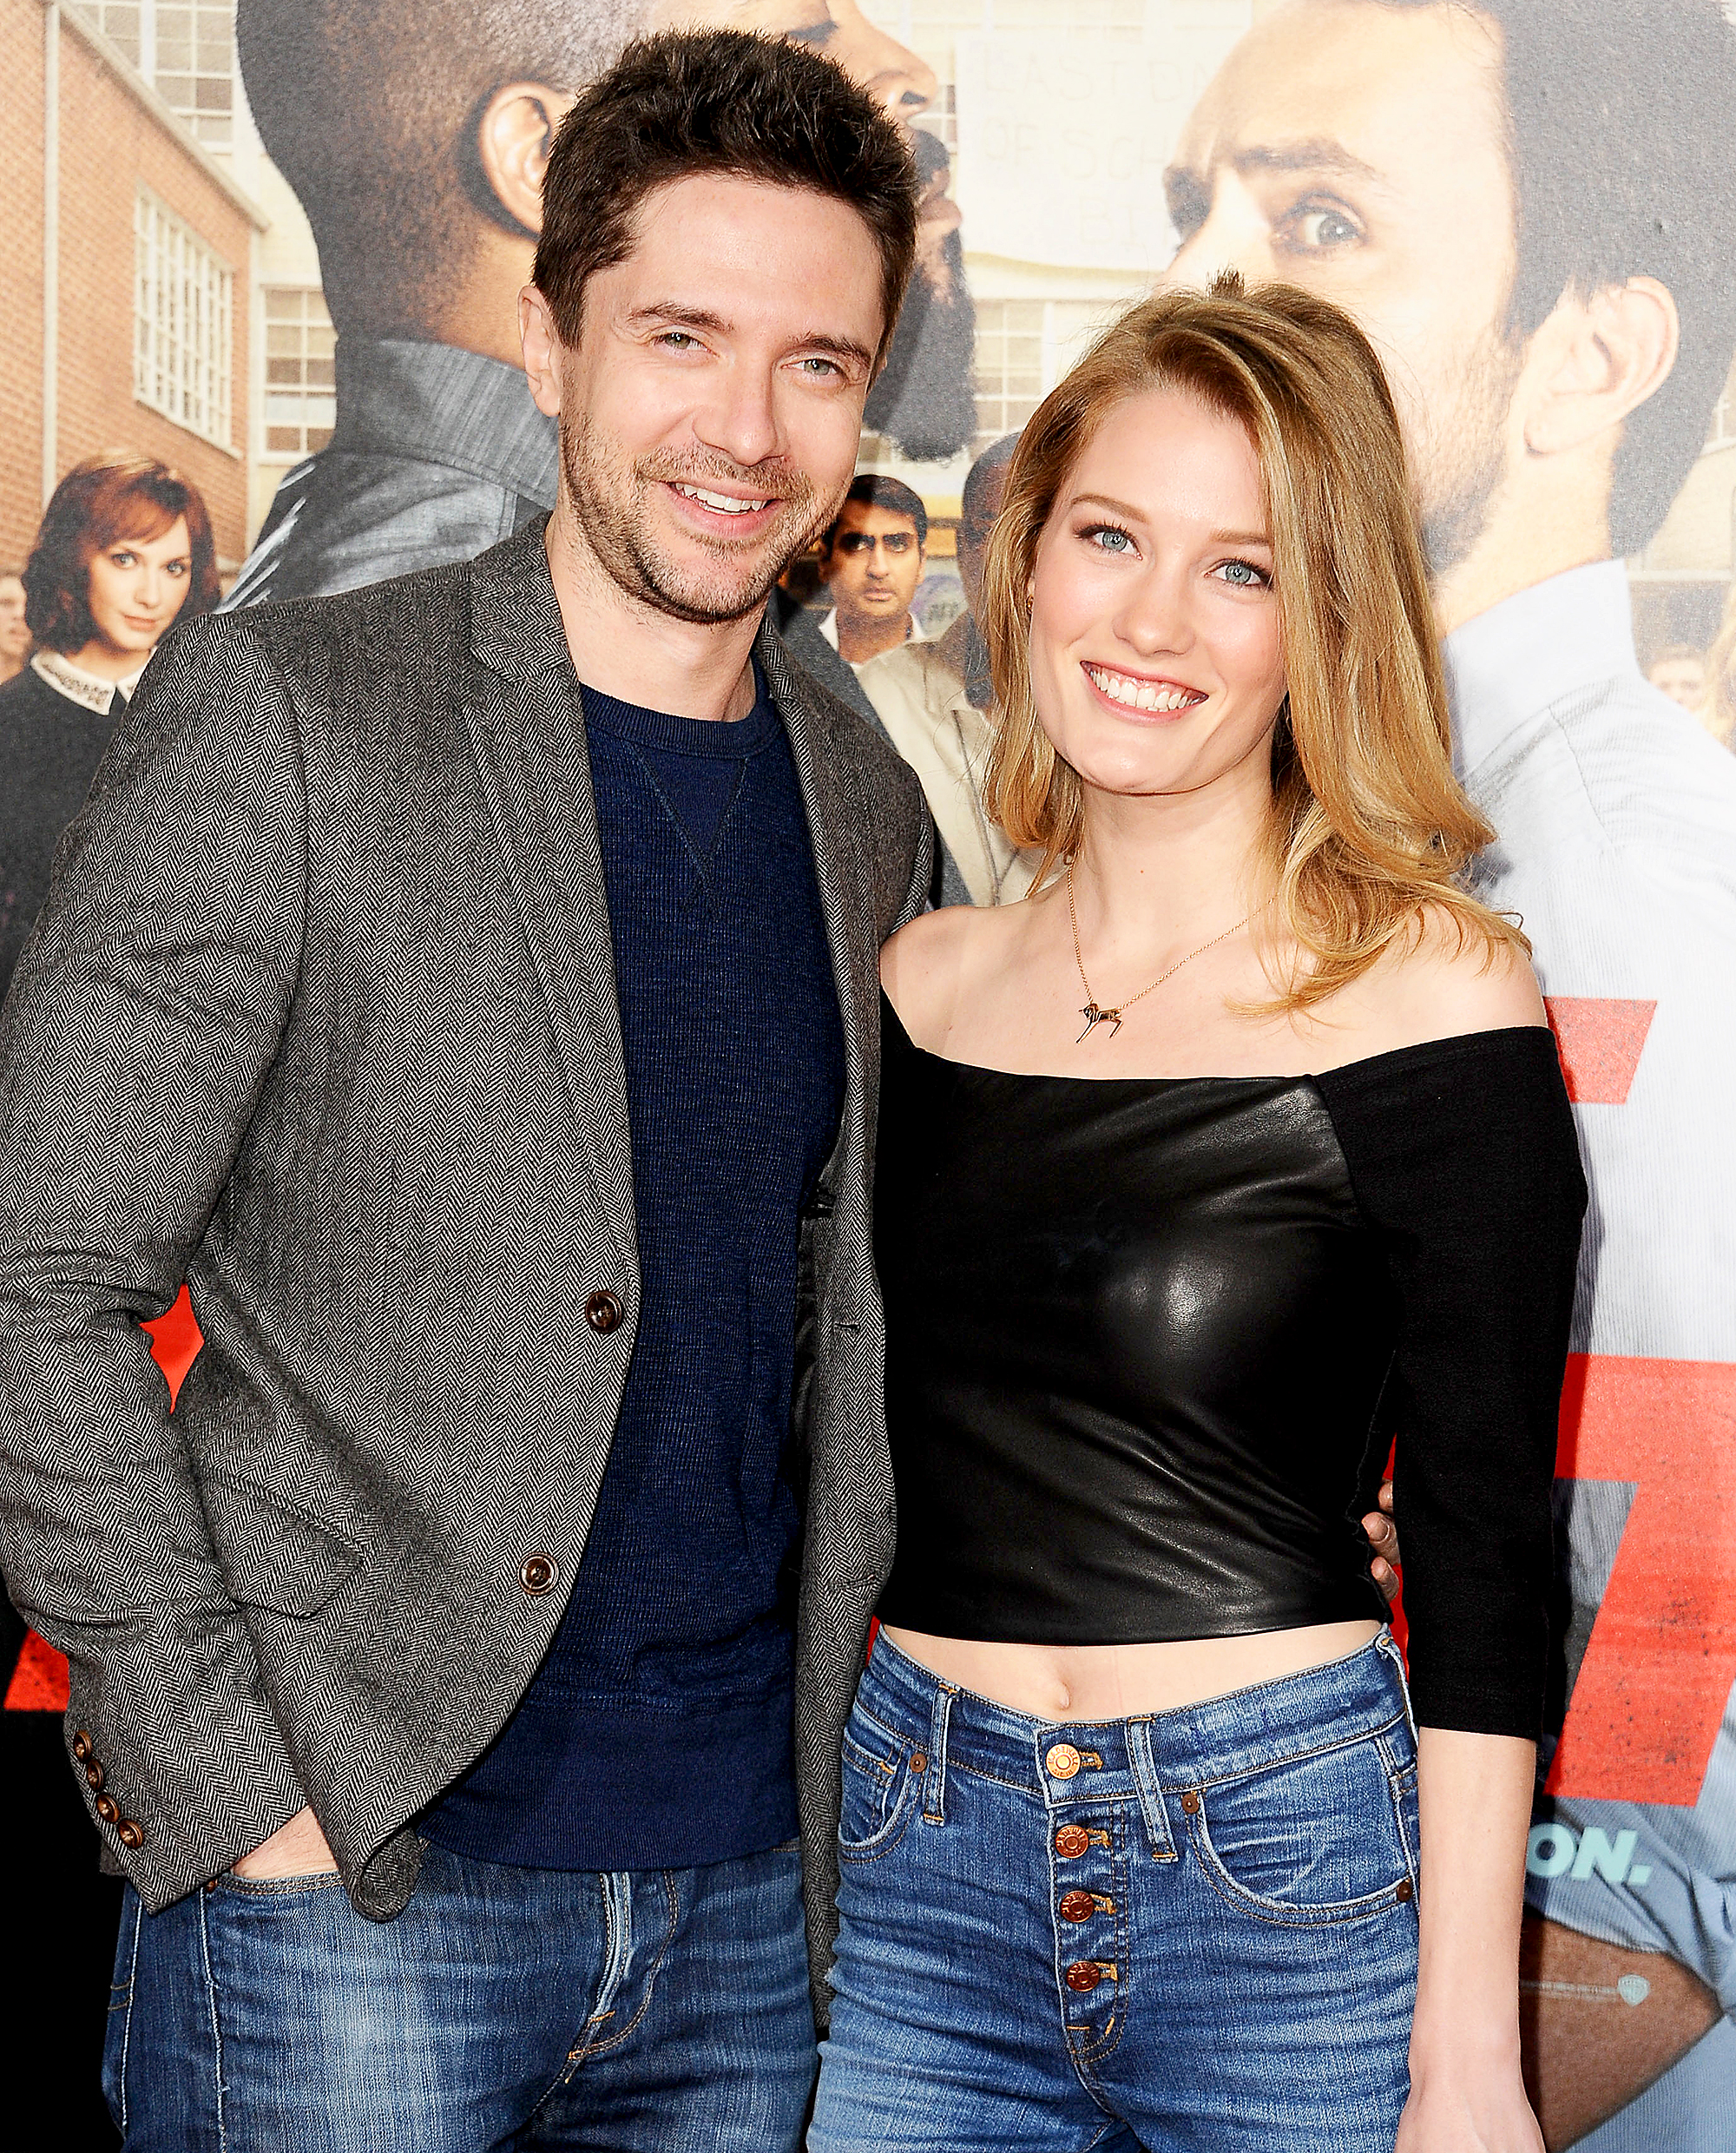 Topher Grace & Wife Ashley Hinshaw Welcome Their First Child!